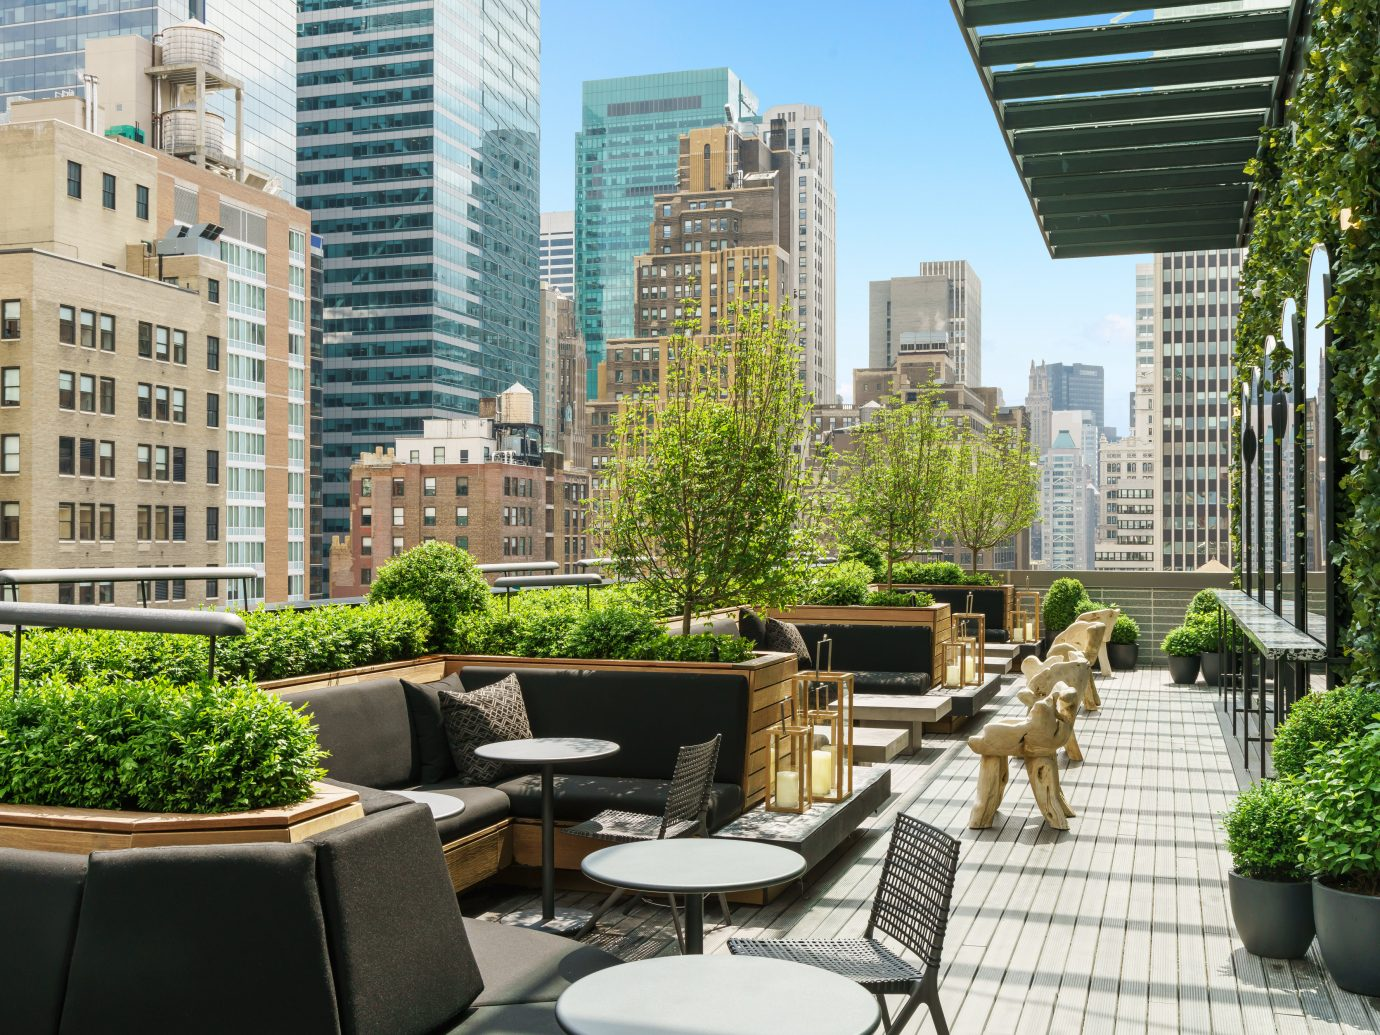 The Best Hotel Rooftop Bars in New York City | Jetsetter